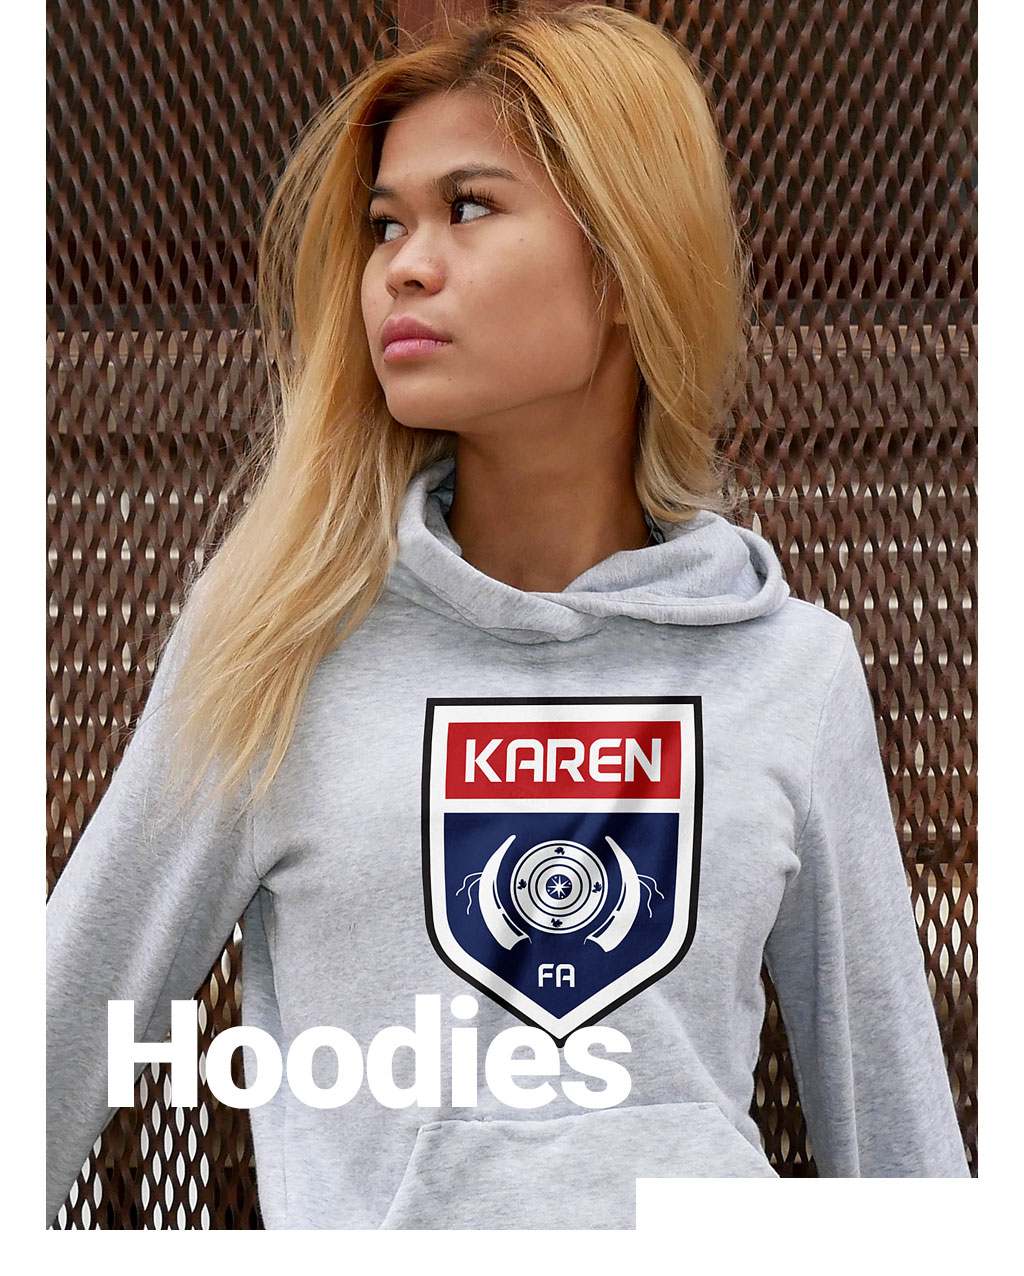 karen-national-team-full-image-header-mobile-women-hoodies-new-5